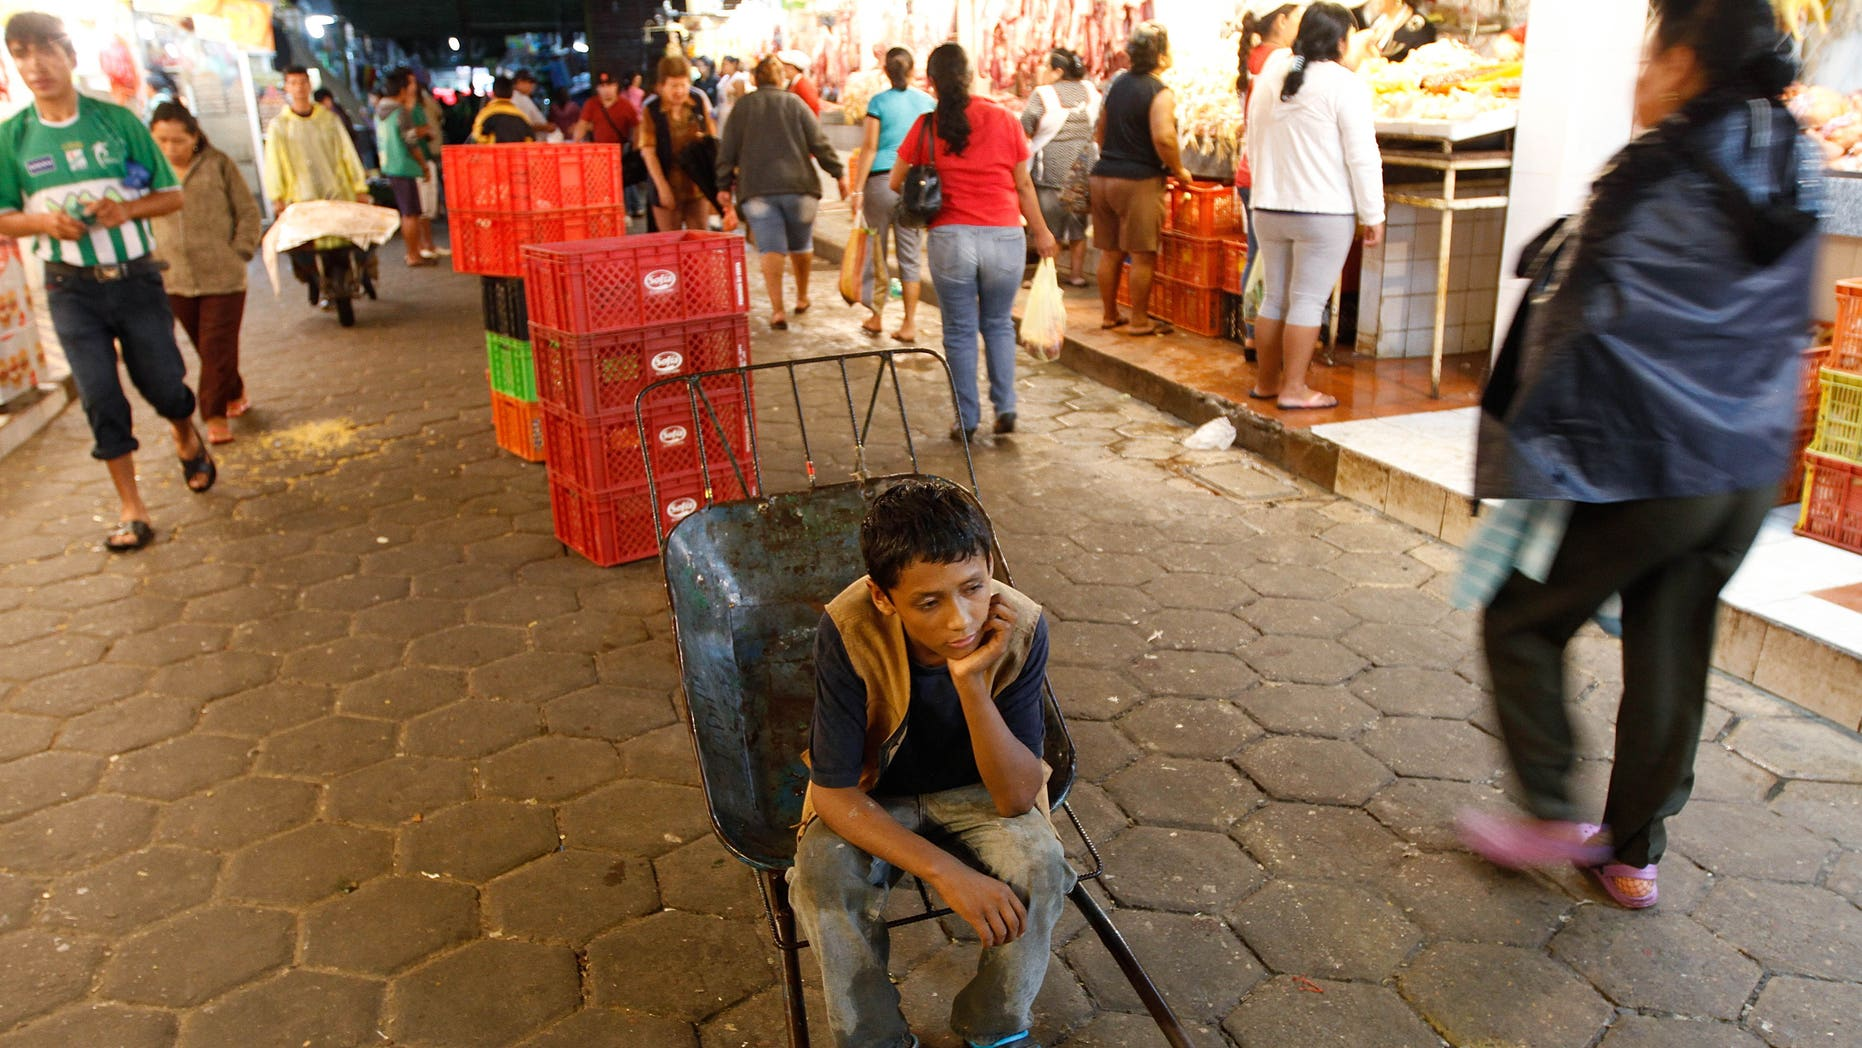 A 12-year-old boy rests as he works as a porter at the El Abasto market in Santa Cruz, Bolivia.